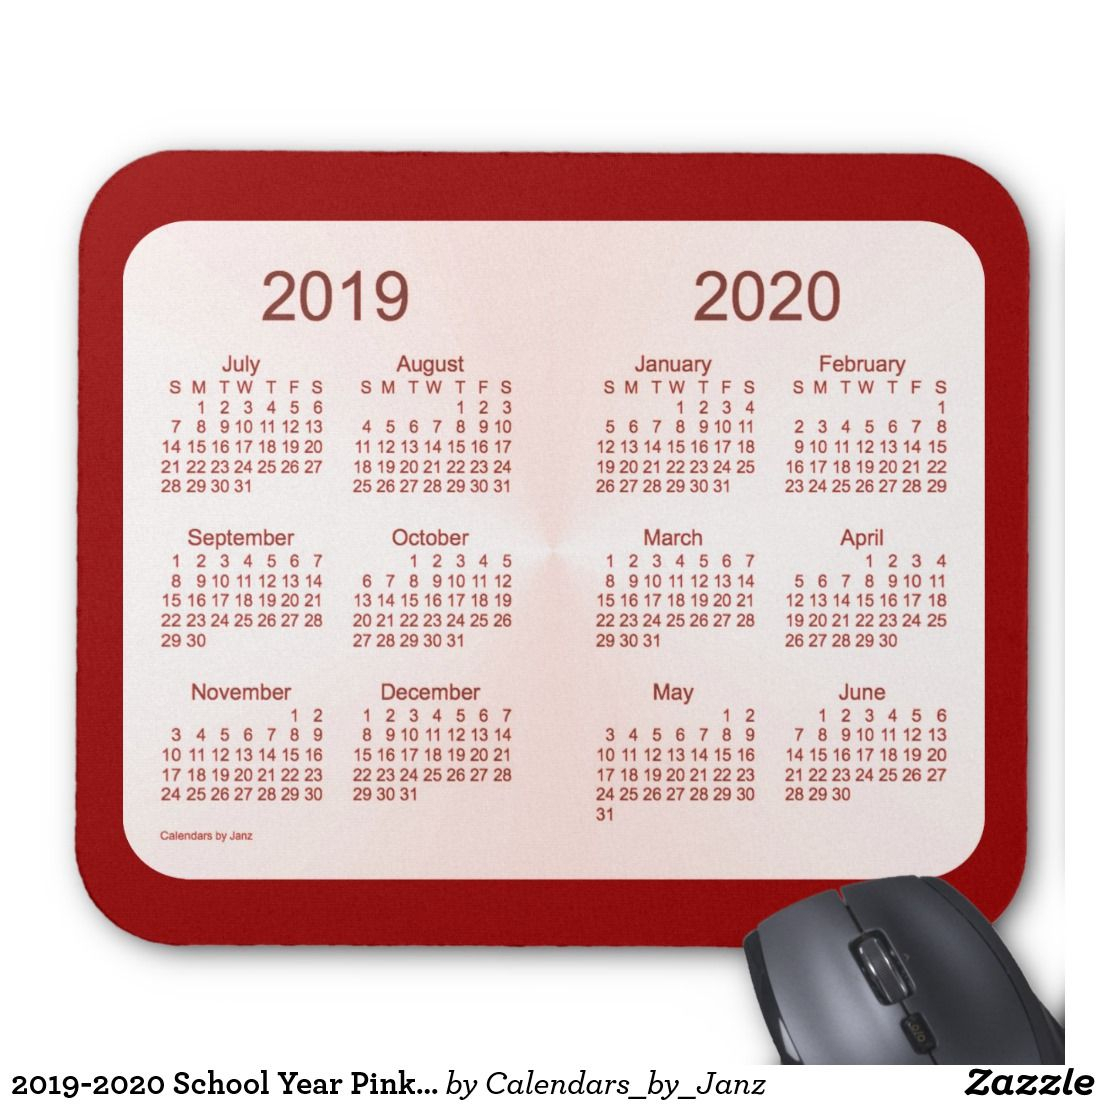 2019-2020 School Year Pink Maroon Calendarjanz Mouse Pad